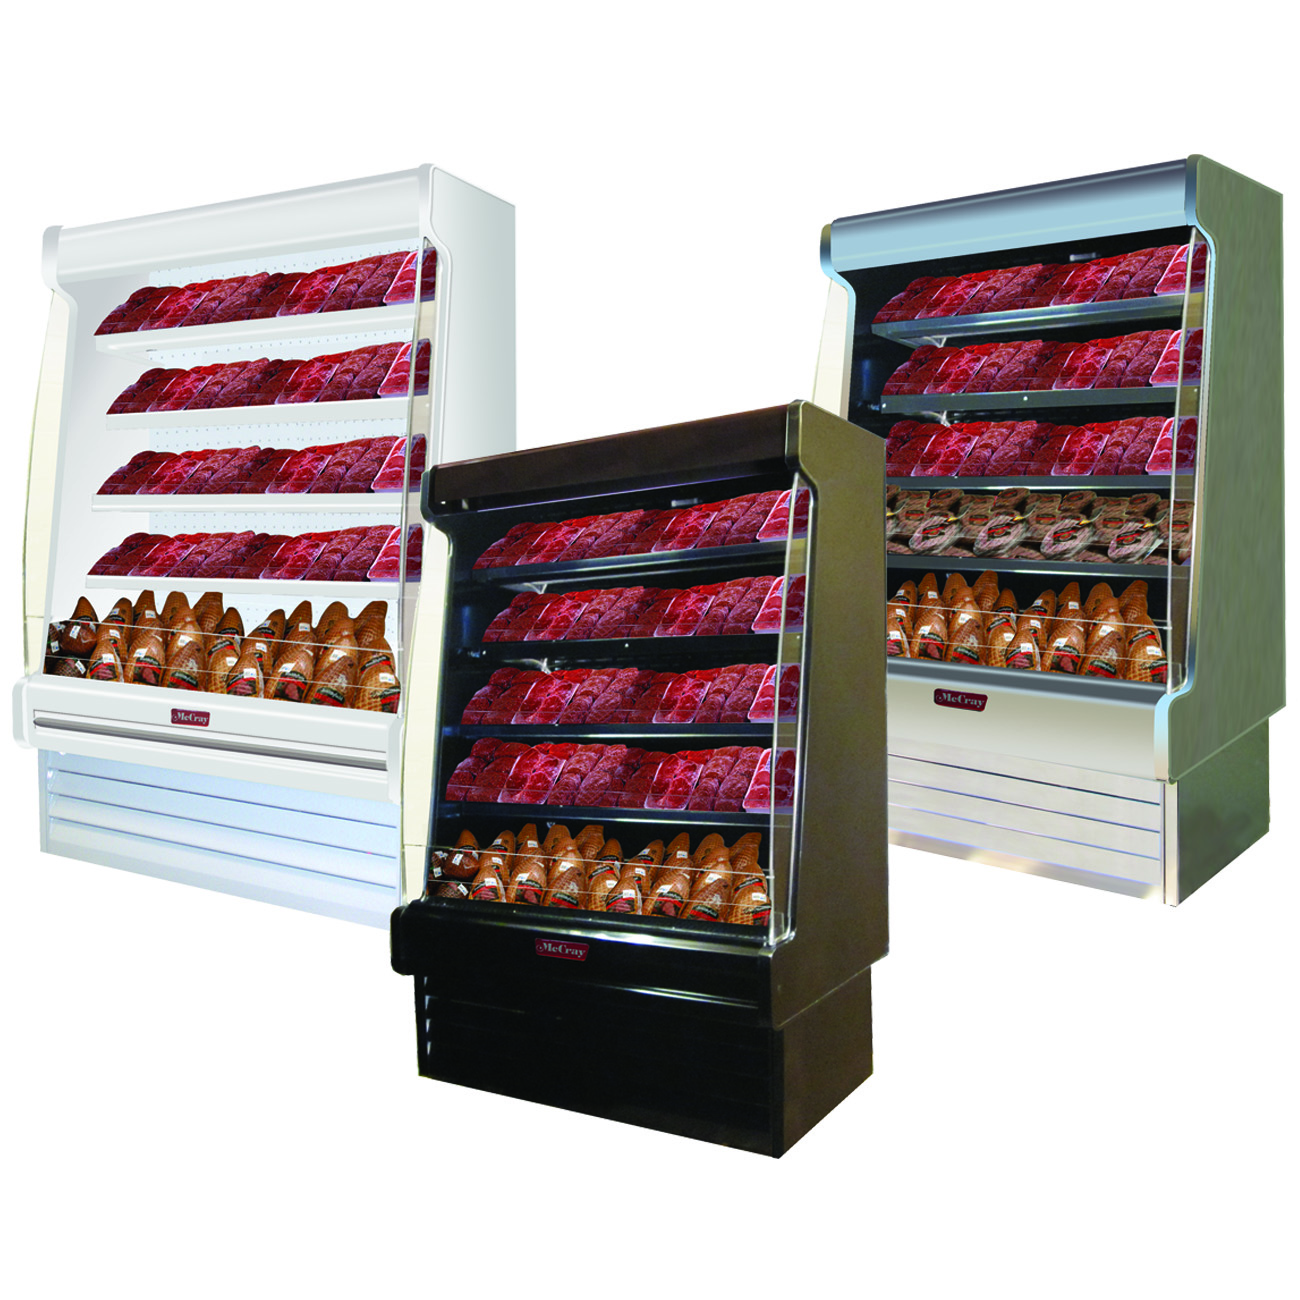 Howard-McCray R-OM35E-3S-S-LED merchandiser, open refrigerated display